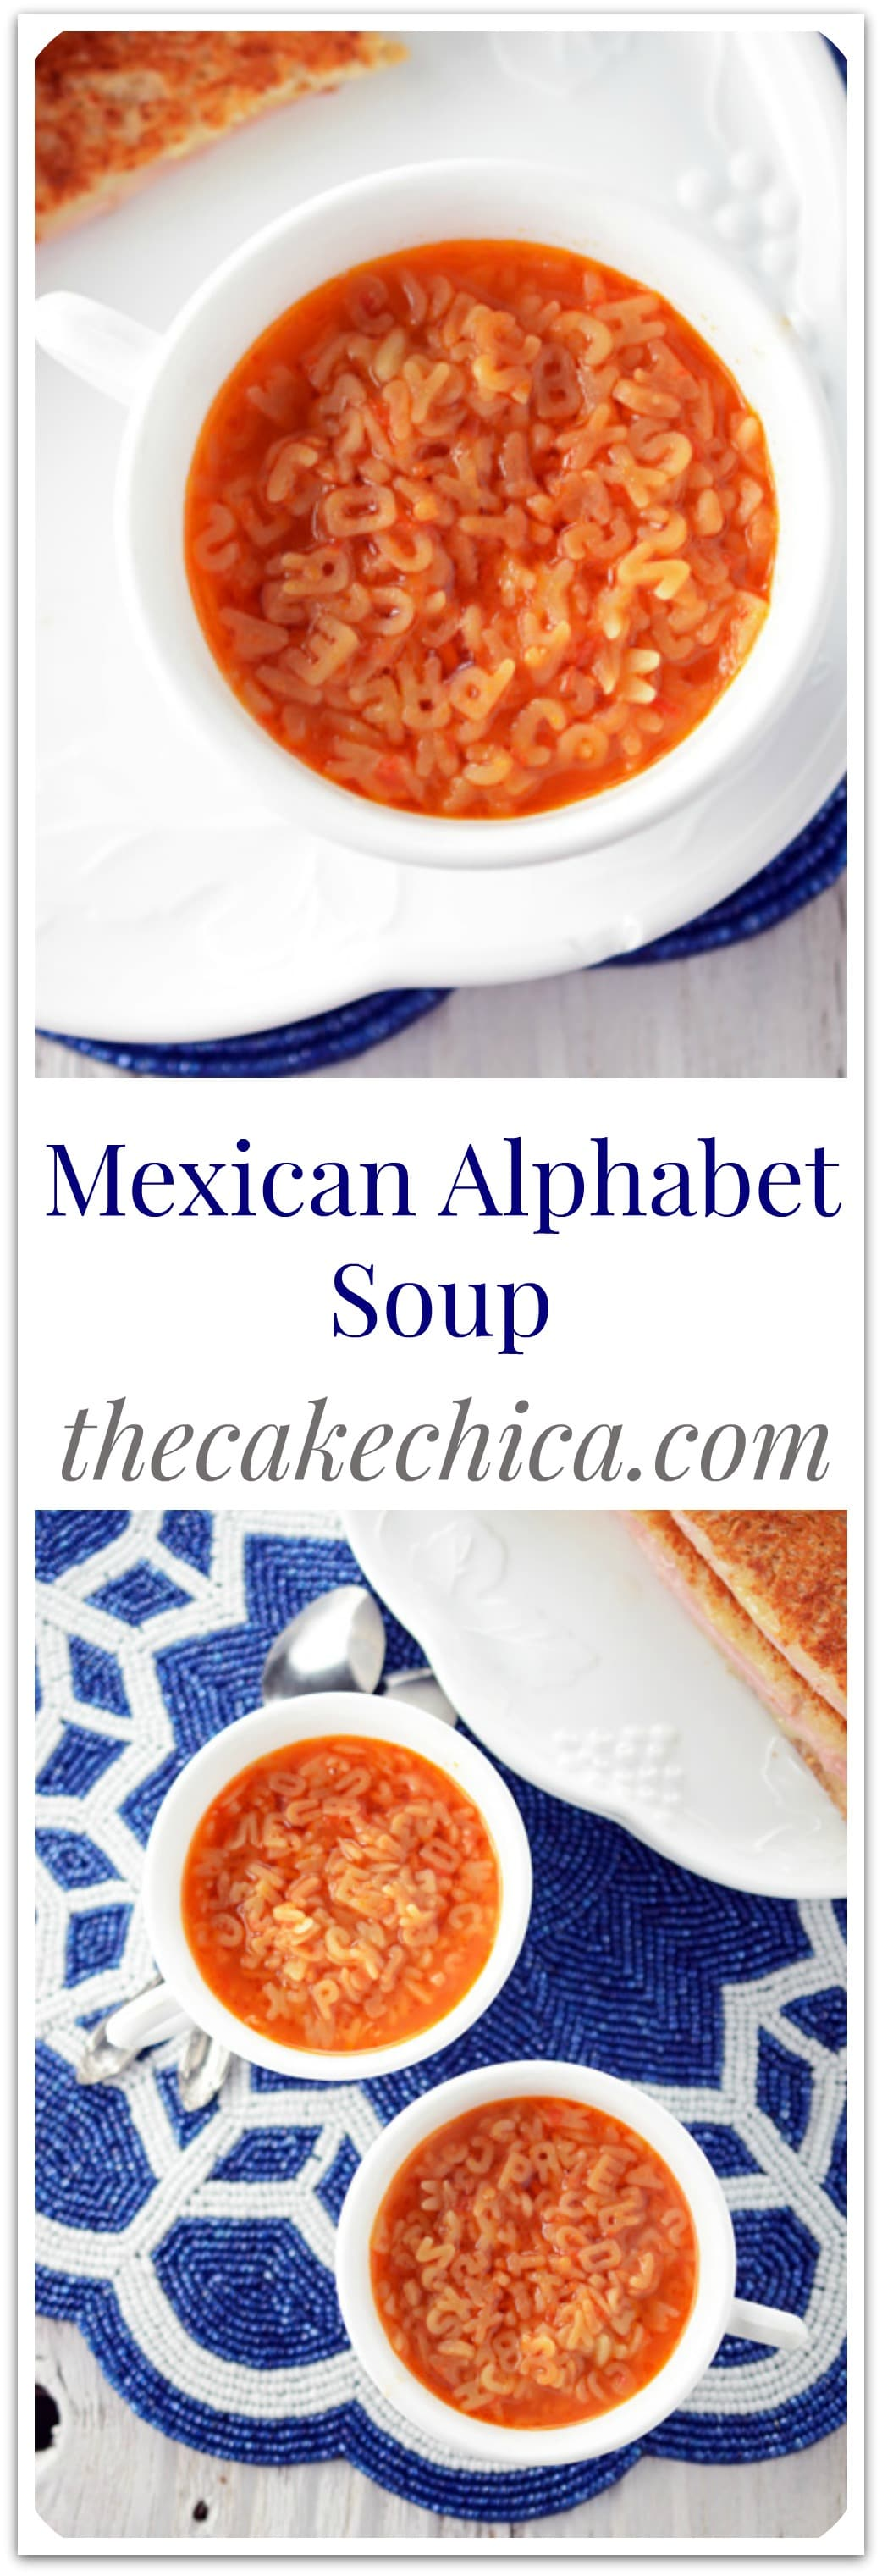 Simple, easy Mexican Alphabet Soup